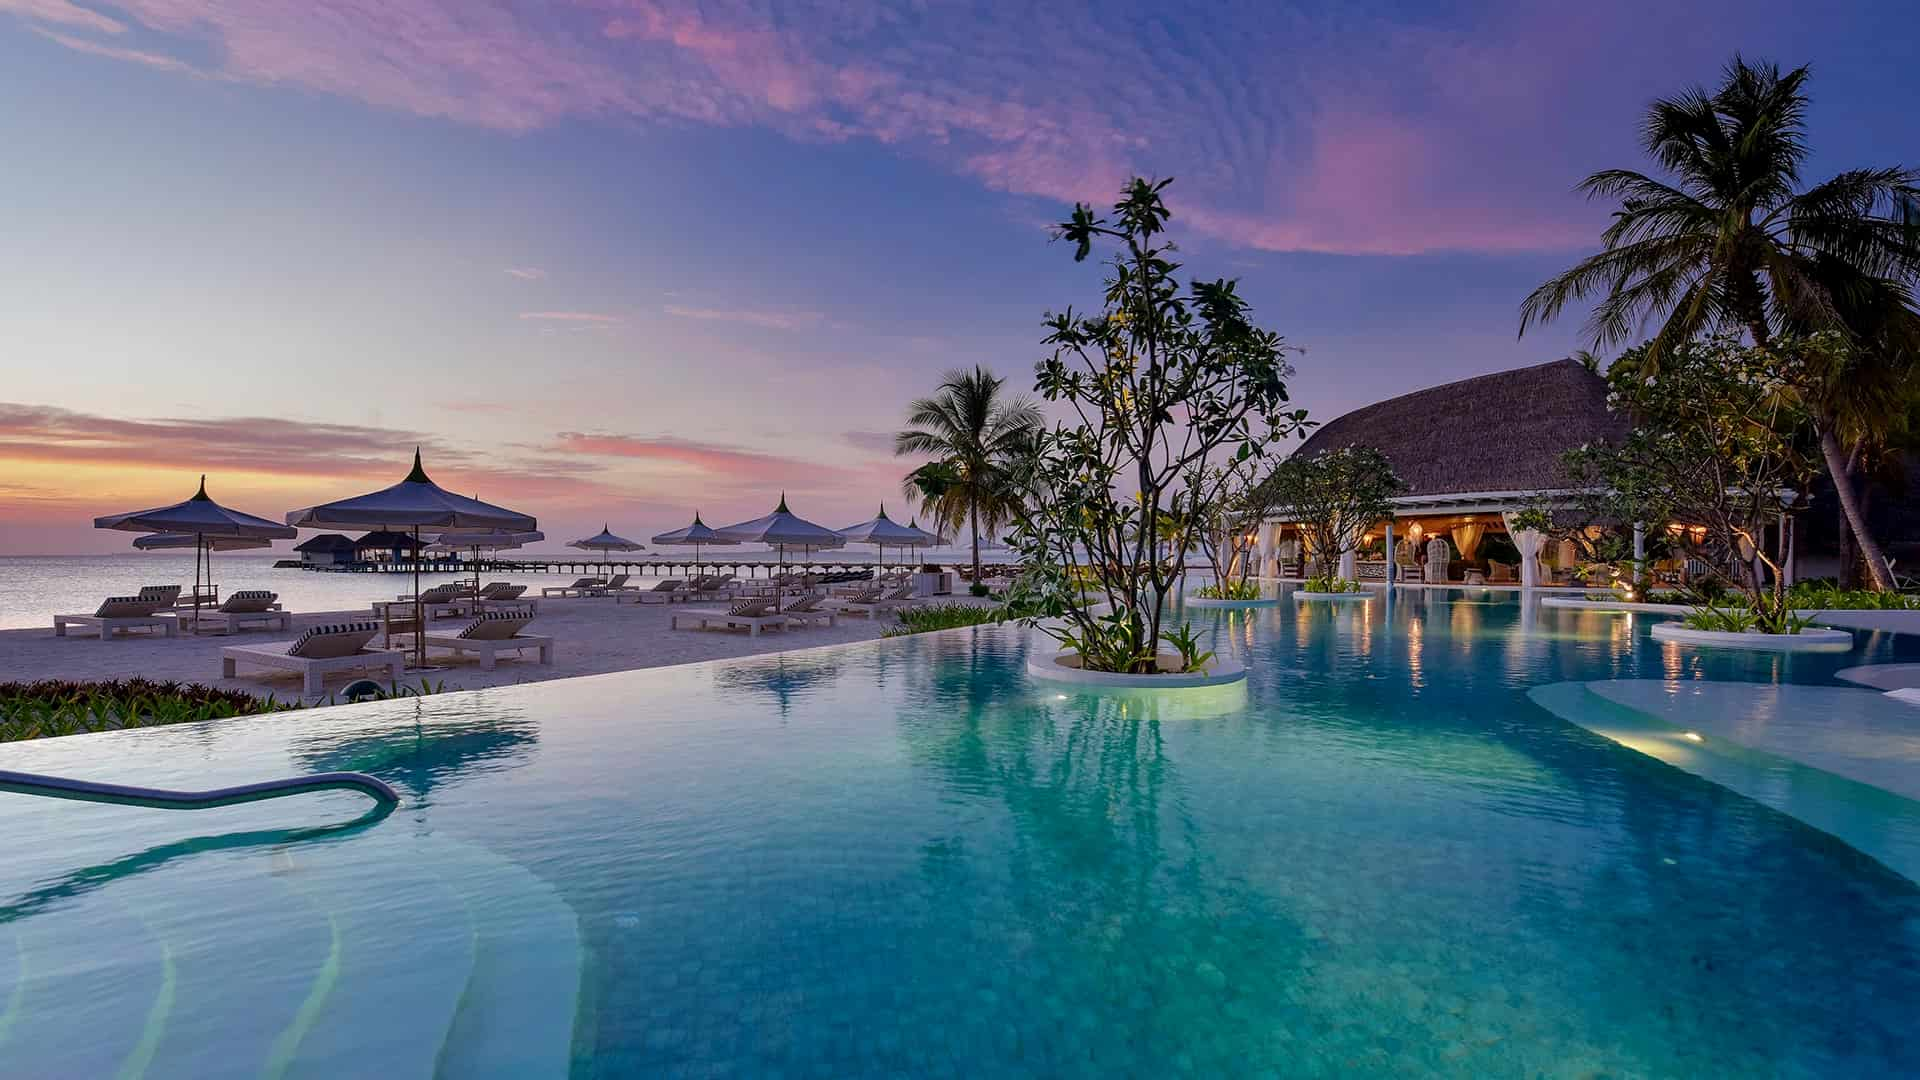 Luxury resort Maldive Kanuhura